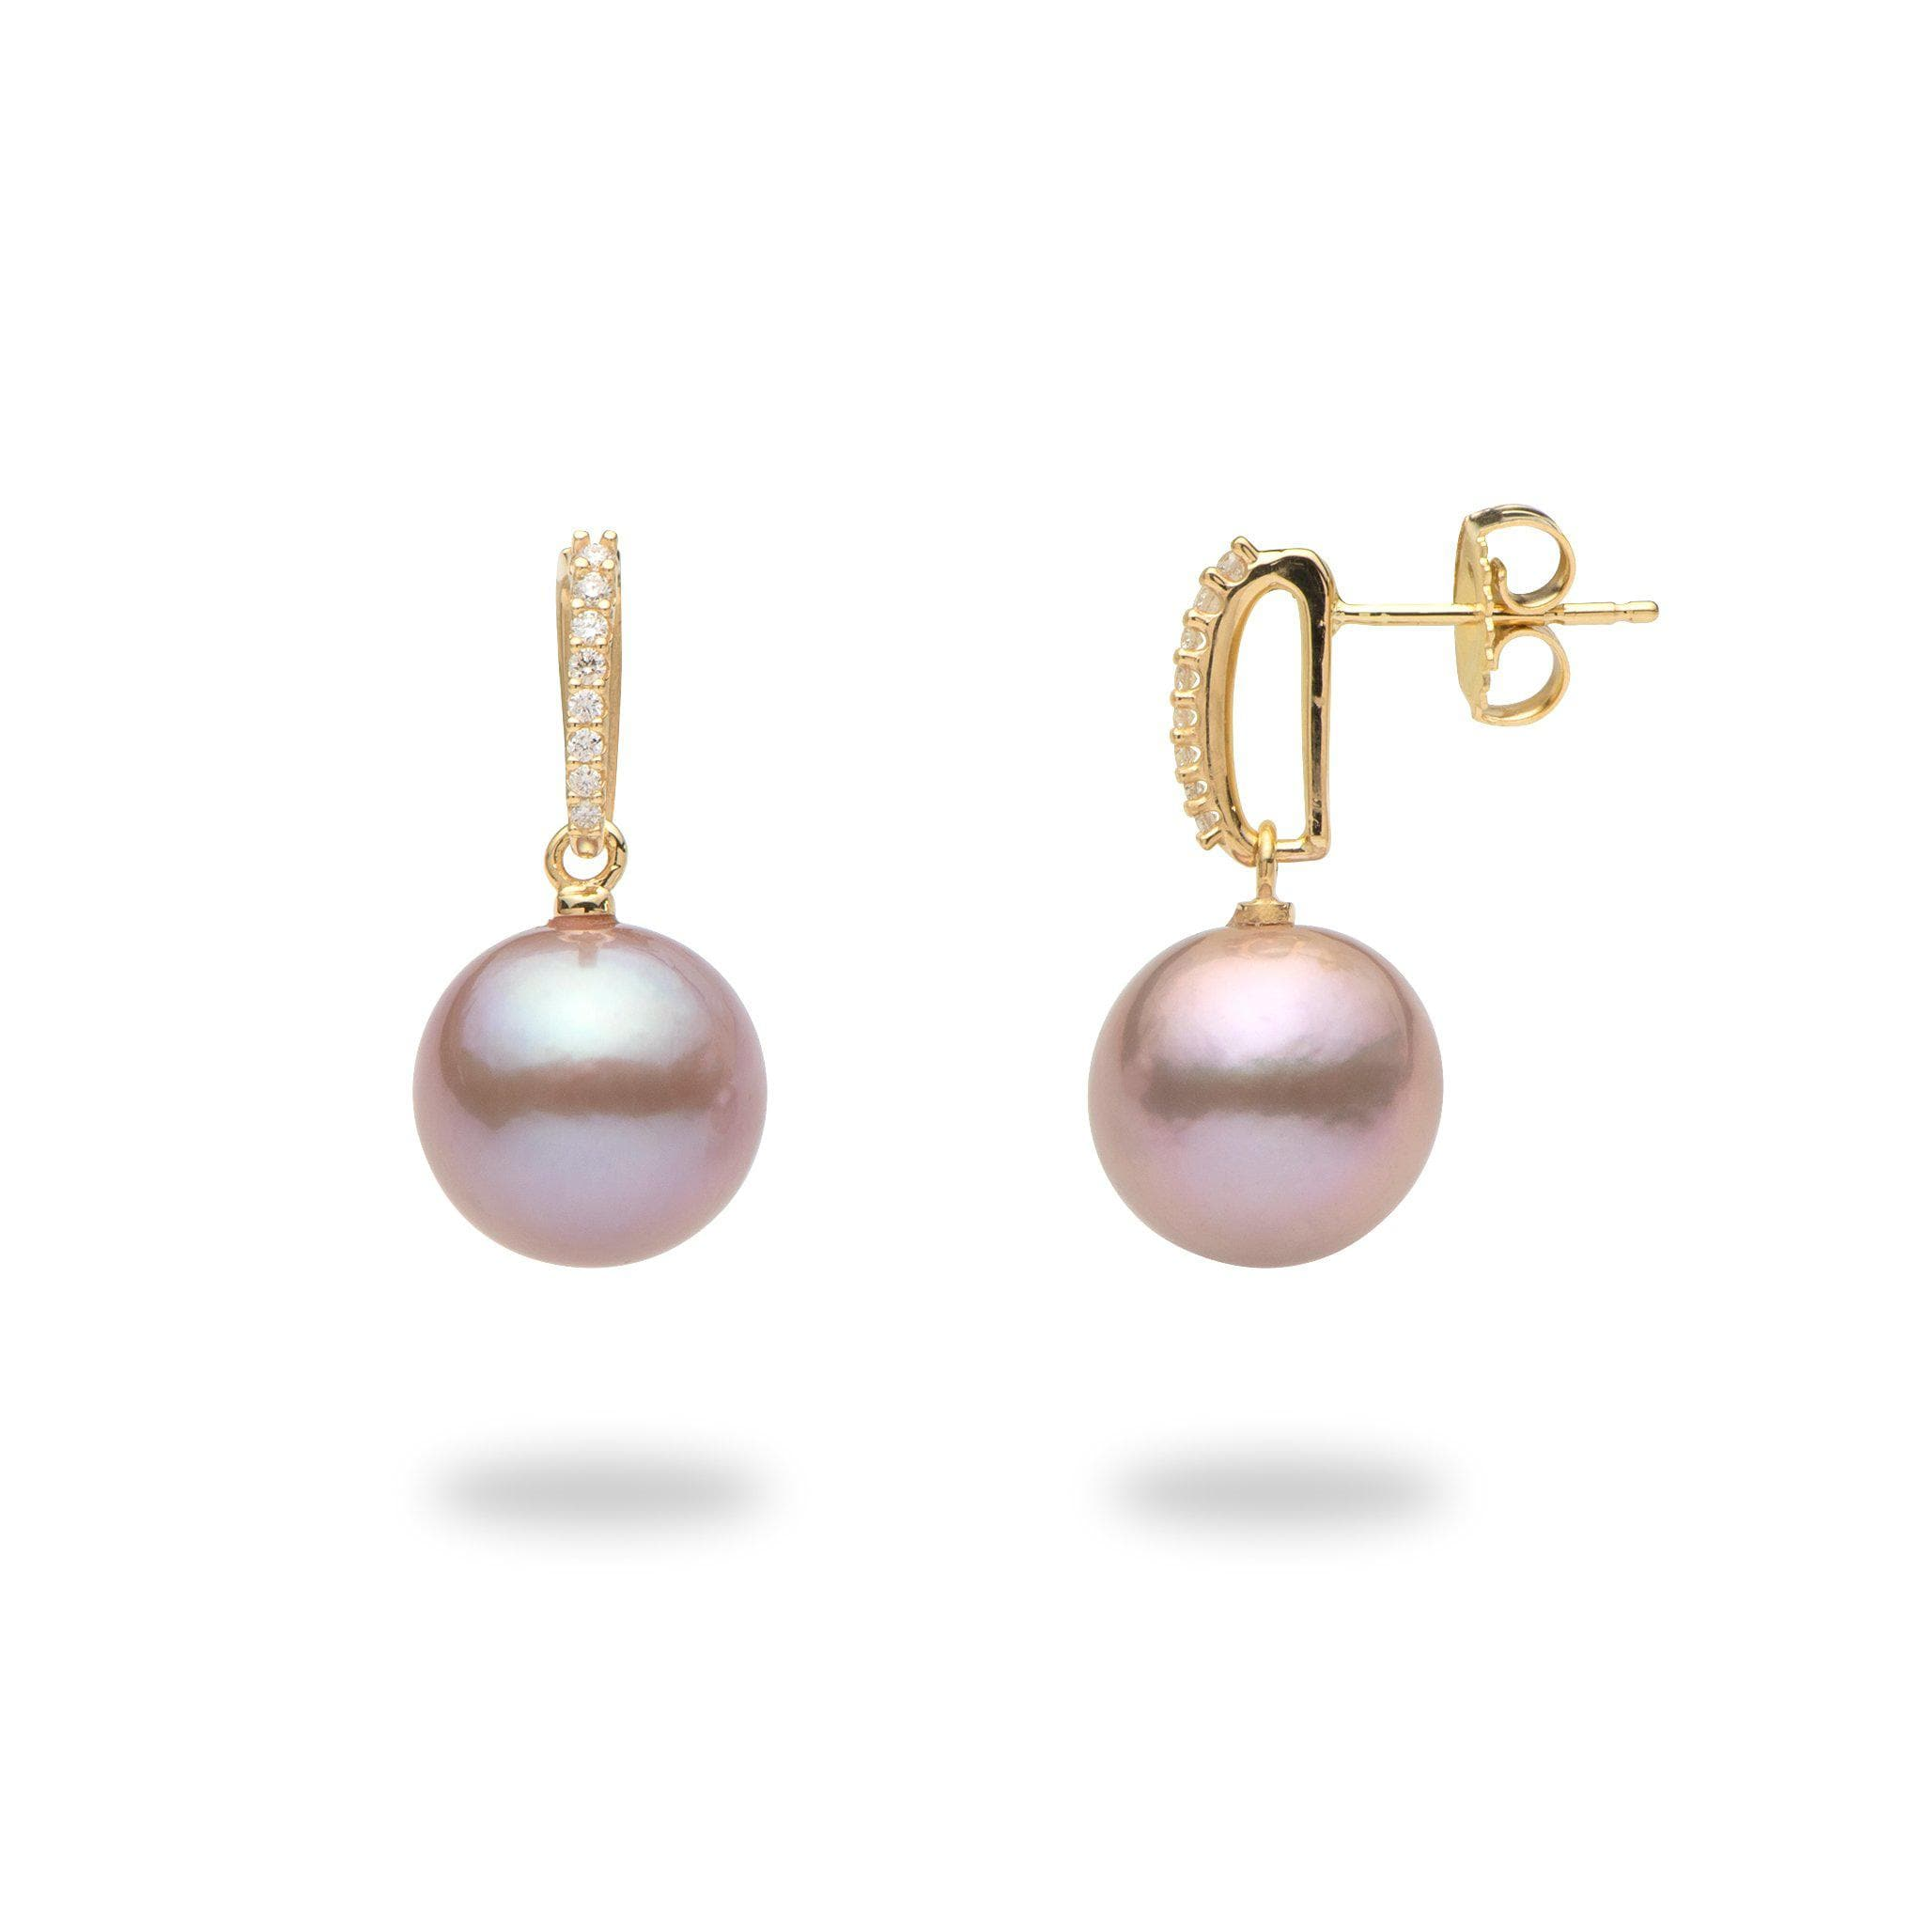 9772669f34e42 Lavender Freshwater Pearl Earrings in 14K Yellow Gold with Diamonds